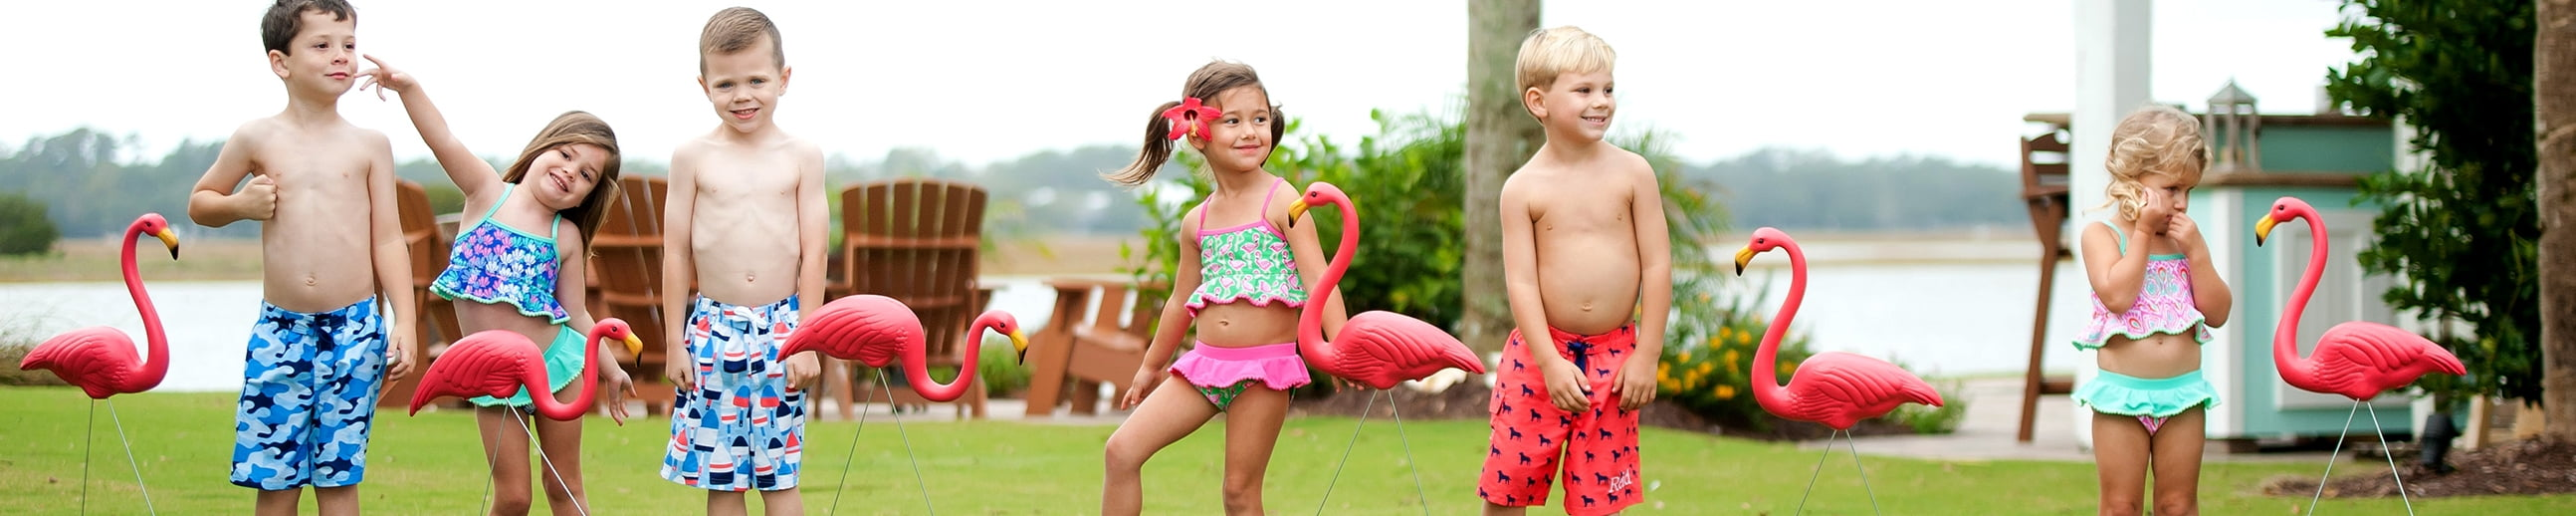 Wholesale Kids' Swimsuit Sets